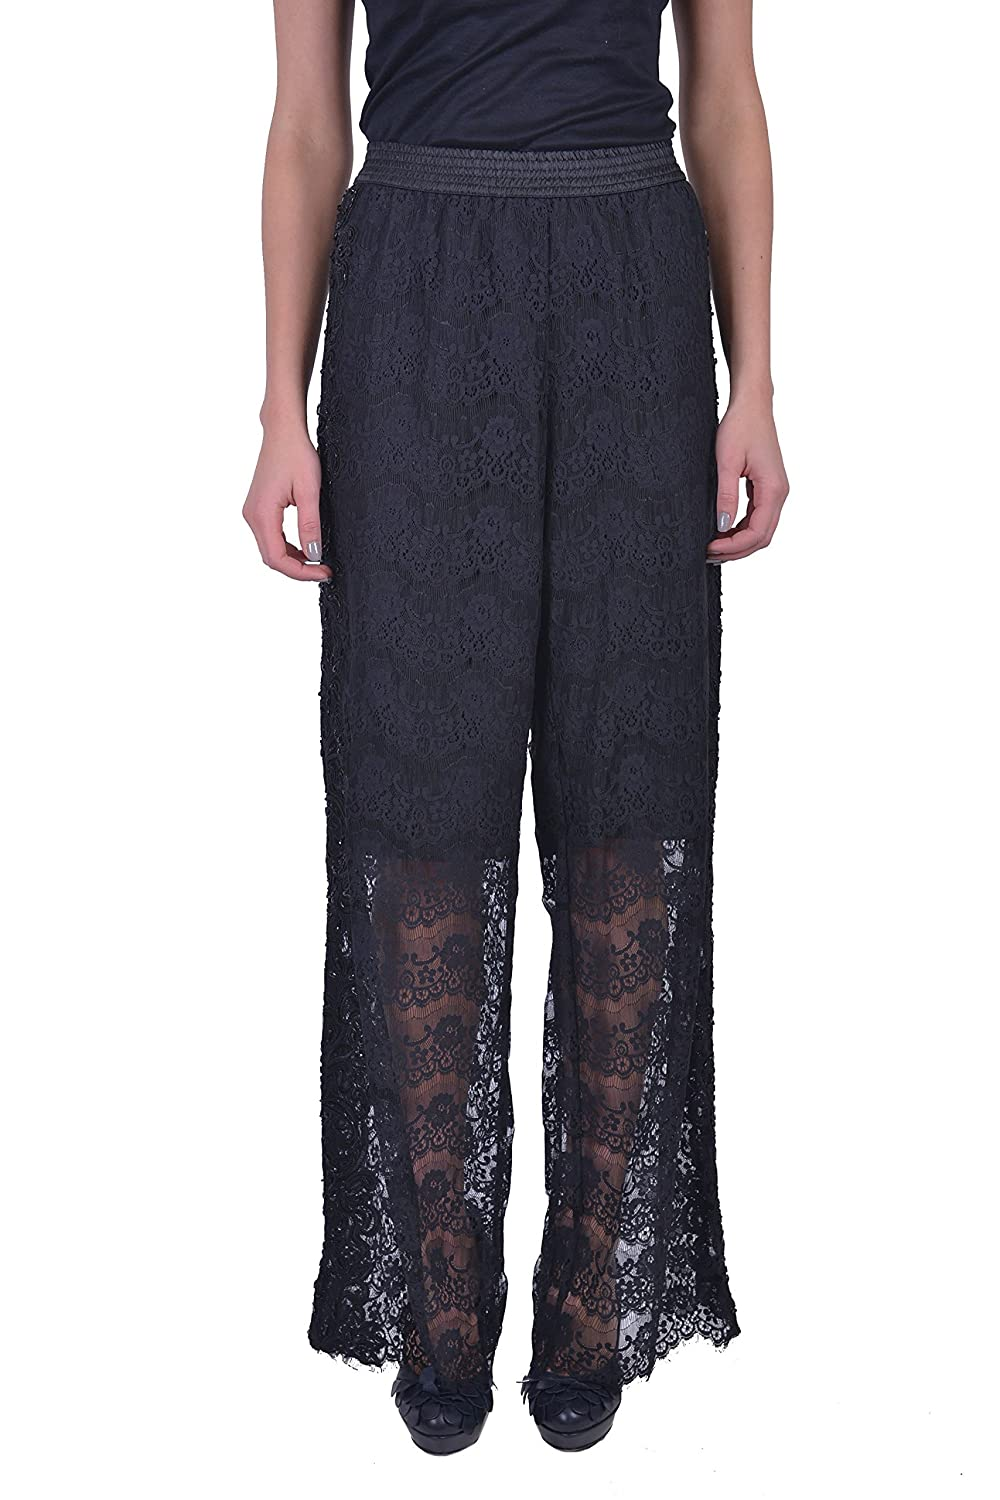 Just Cavalli Women's Black Embroidered Lace Wide Leg Pants US 4 IT 40